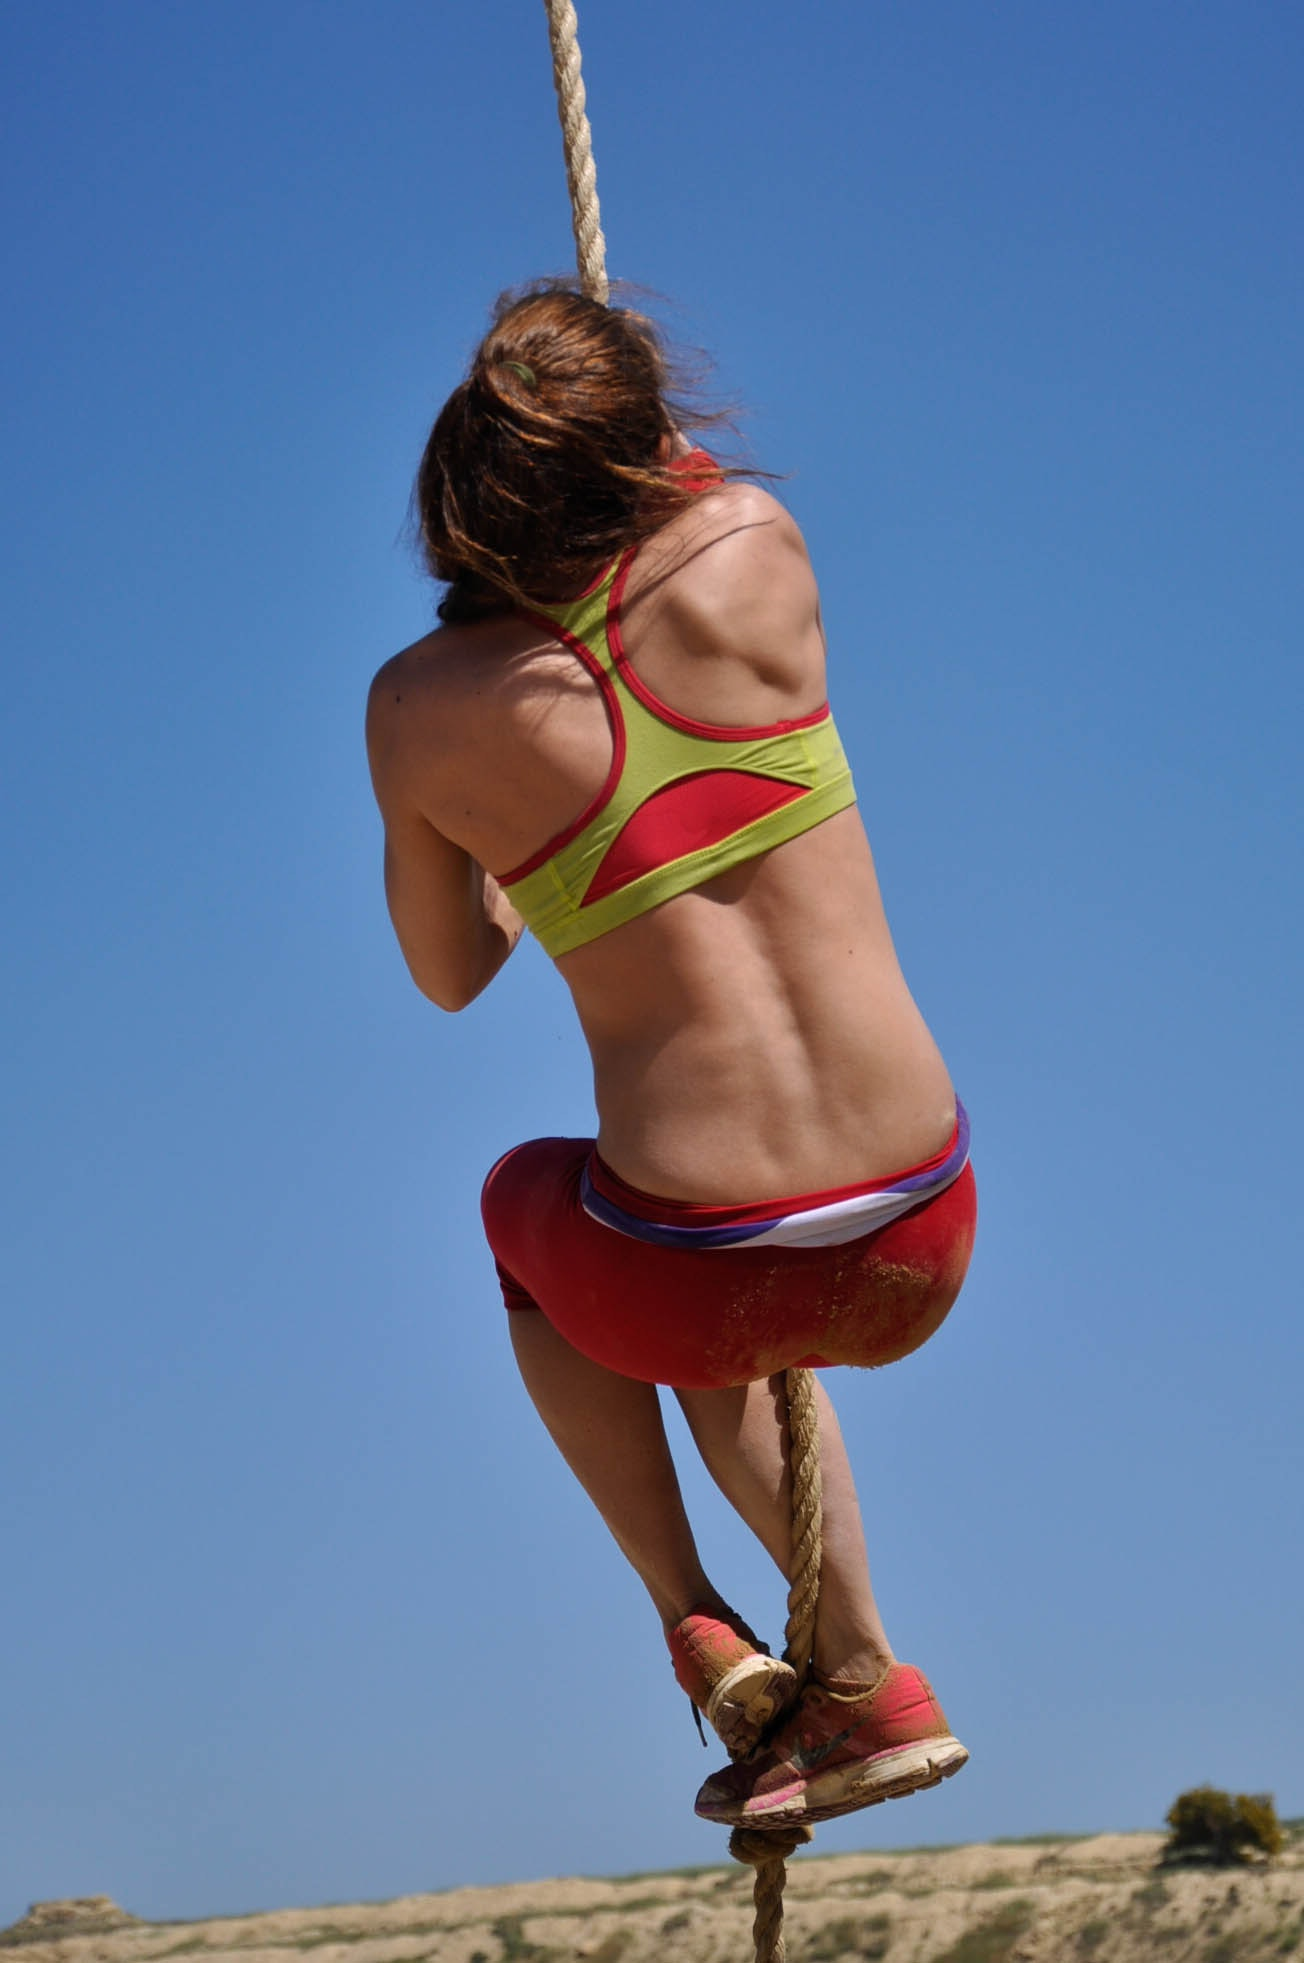 Woman in green and red sports bra holding rope during daytime photo